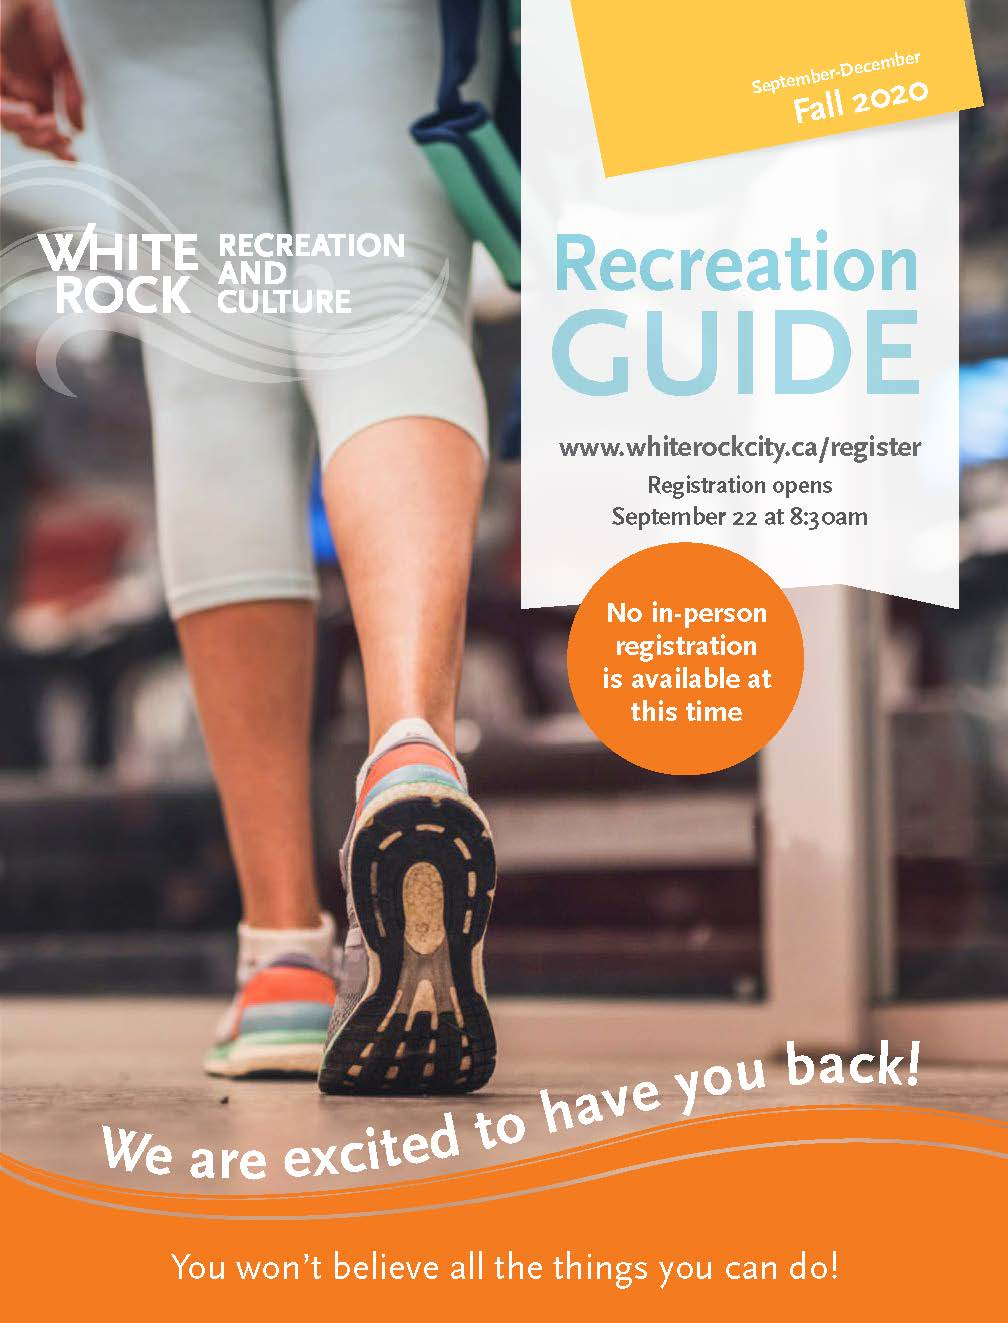 Fall 2020 Rec Guide Cover Opens in new window